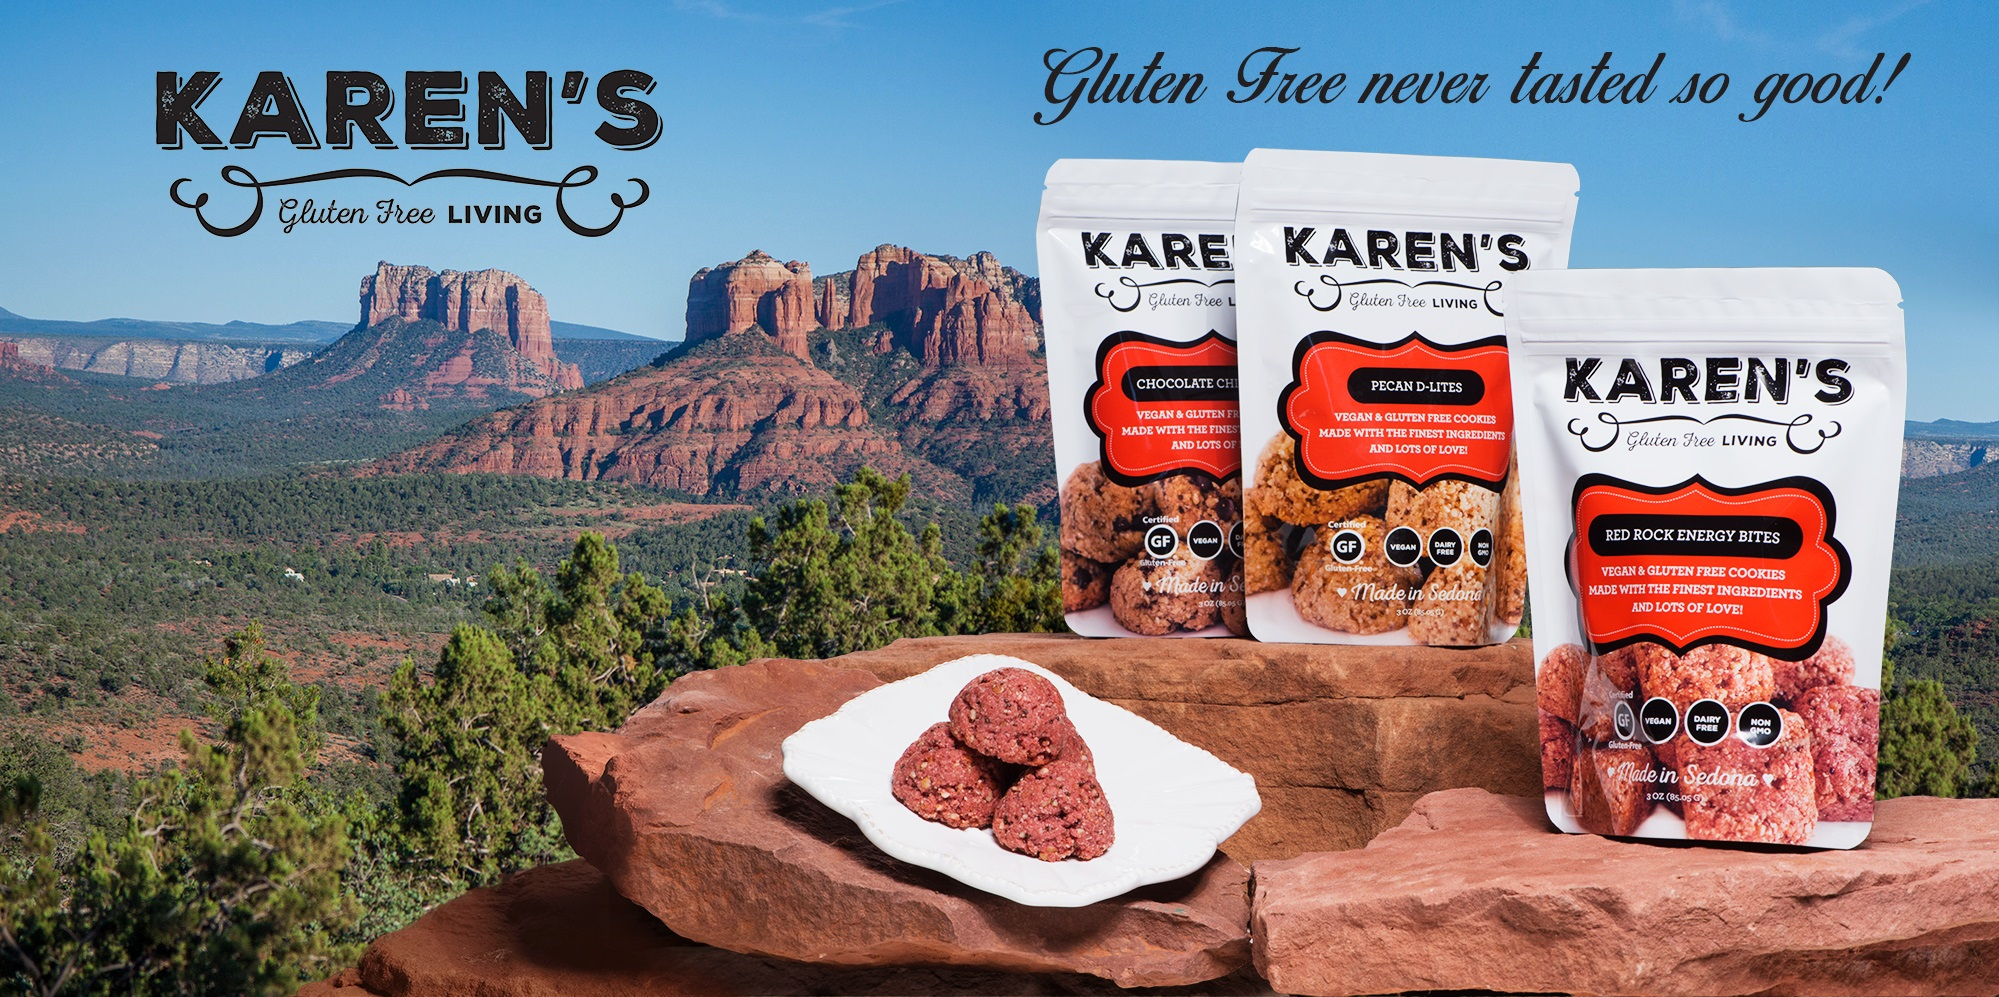 Karen\\\'s Gluten Free Living is utilizing Mr. Checkout\\\'s Fast Track Program to reach Independent Grocery Stores Nationwide.